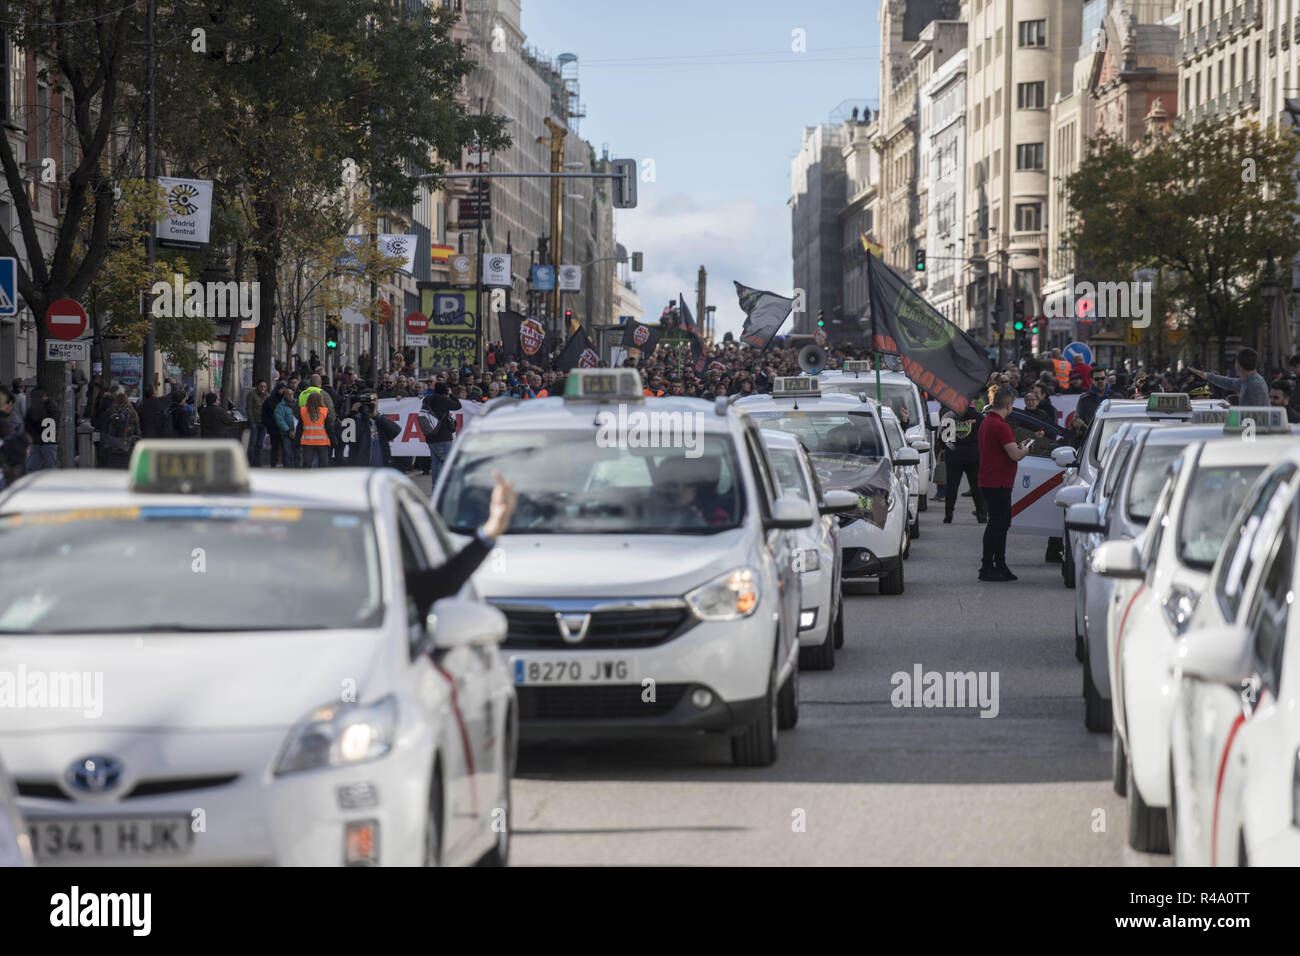 Madrid, Madrid, Spain  26th Nov, 2018  Several taxi are seen